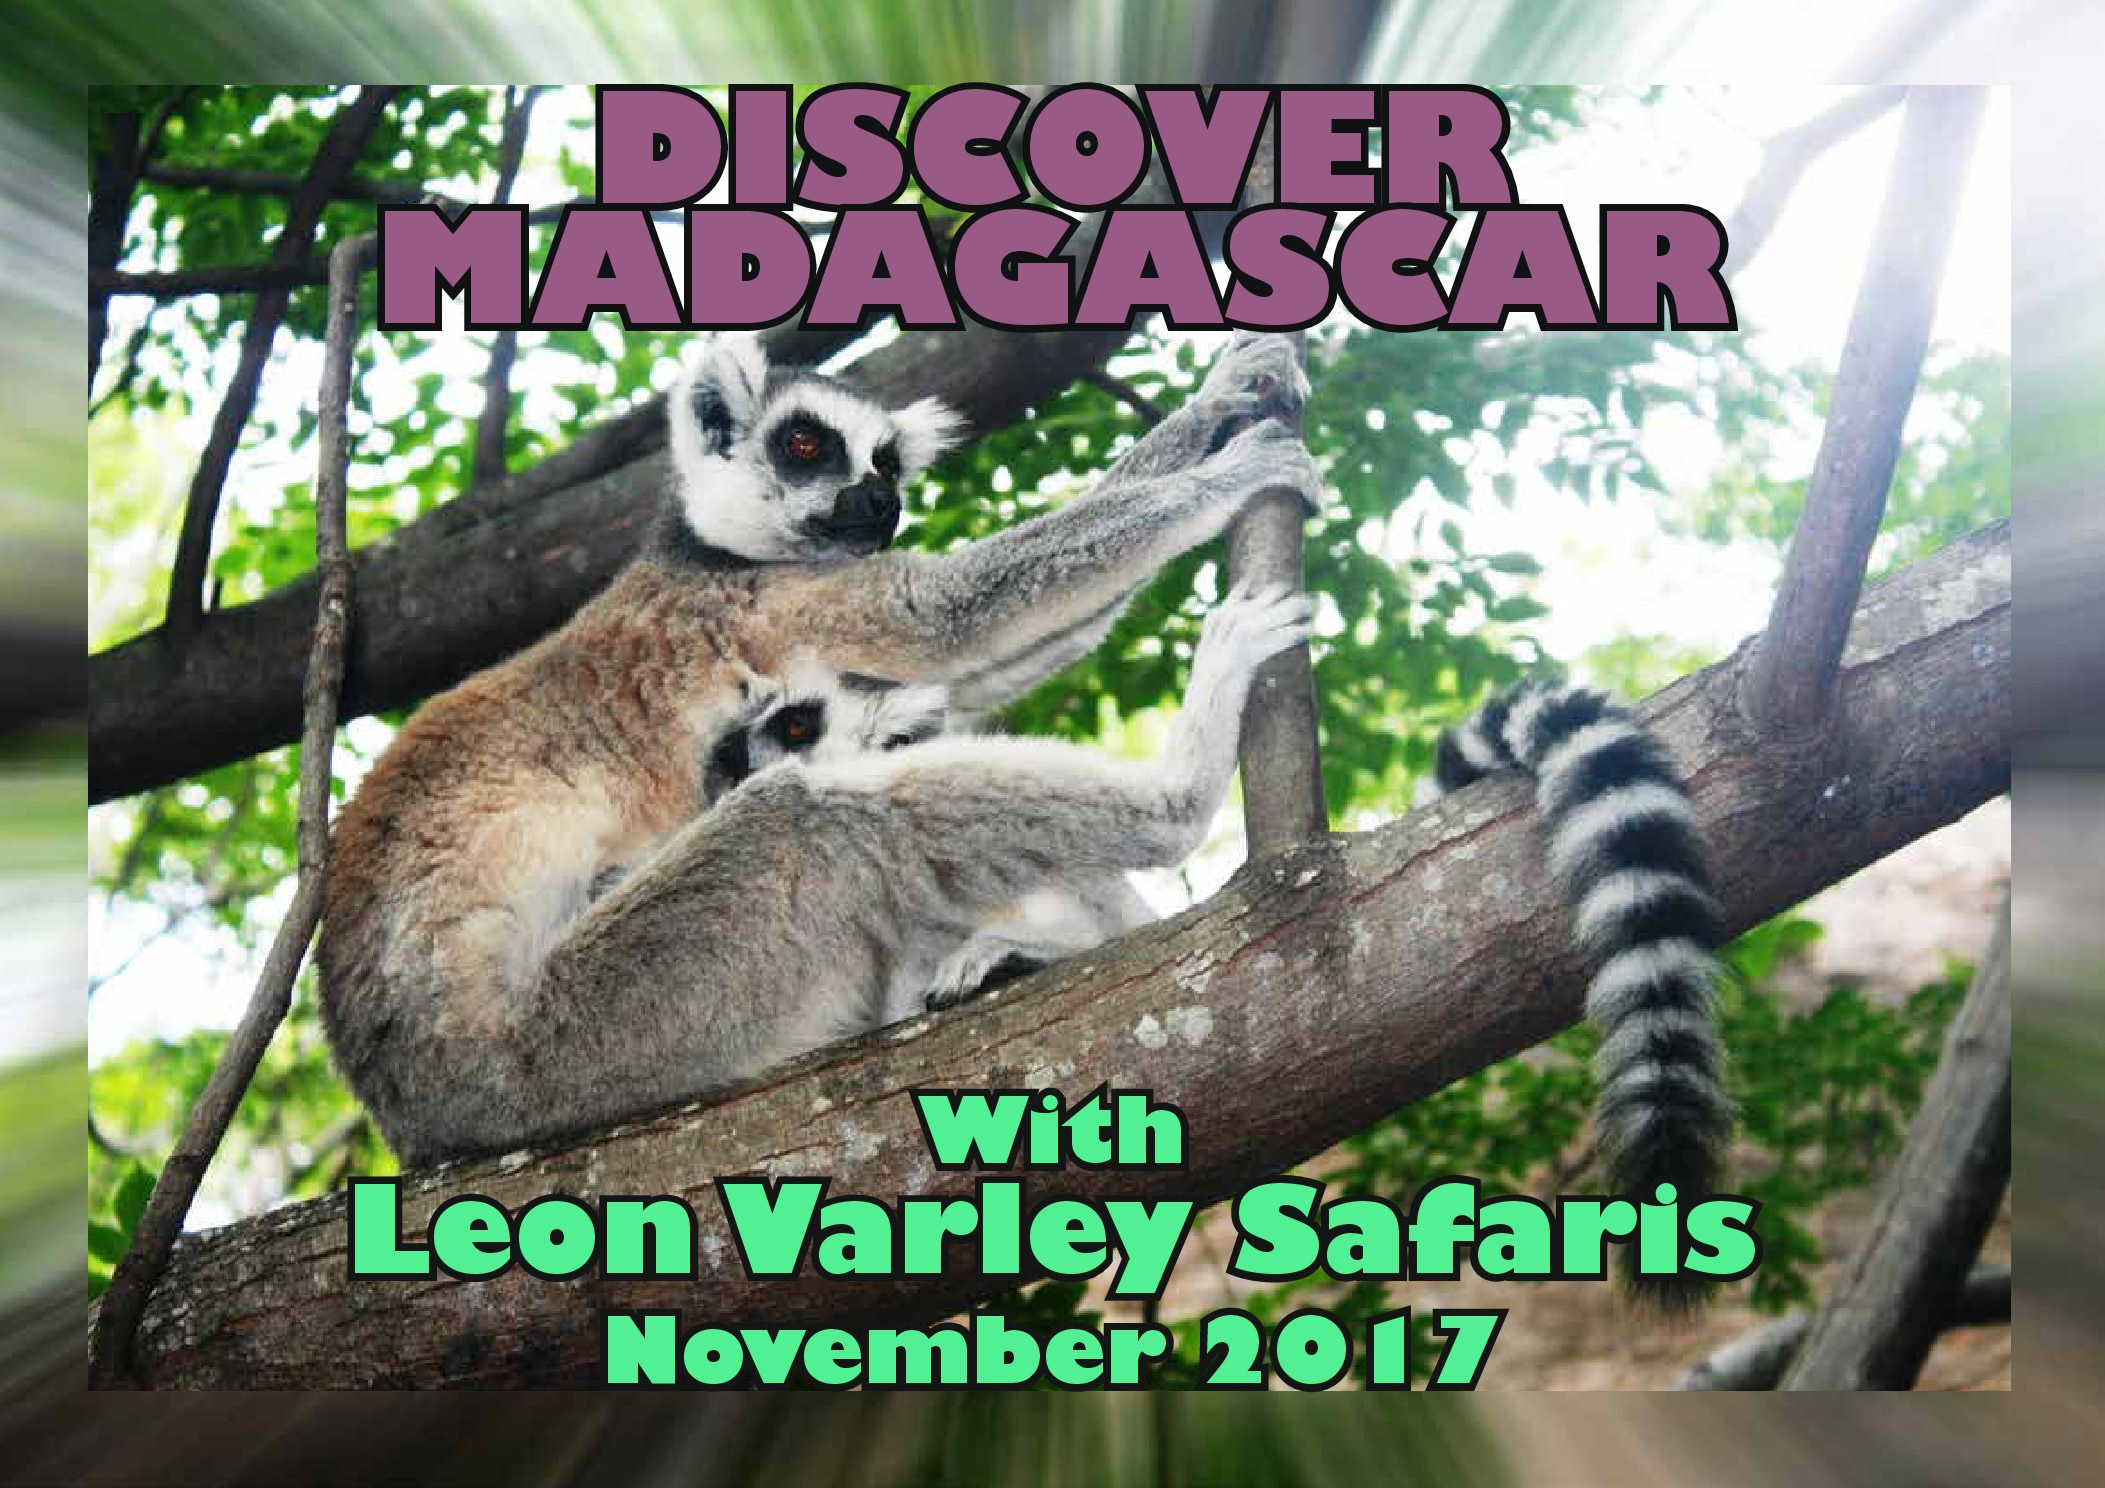 Discover Madagascar with Leon Varley Safaris